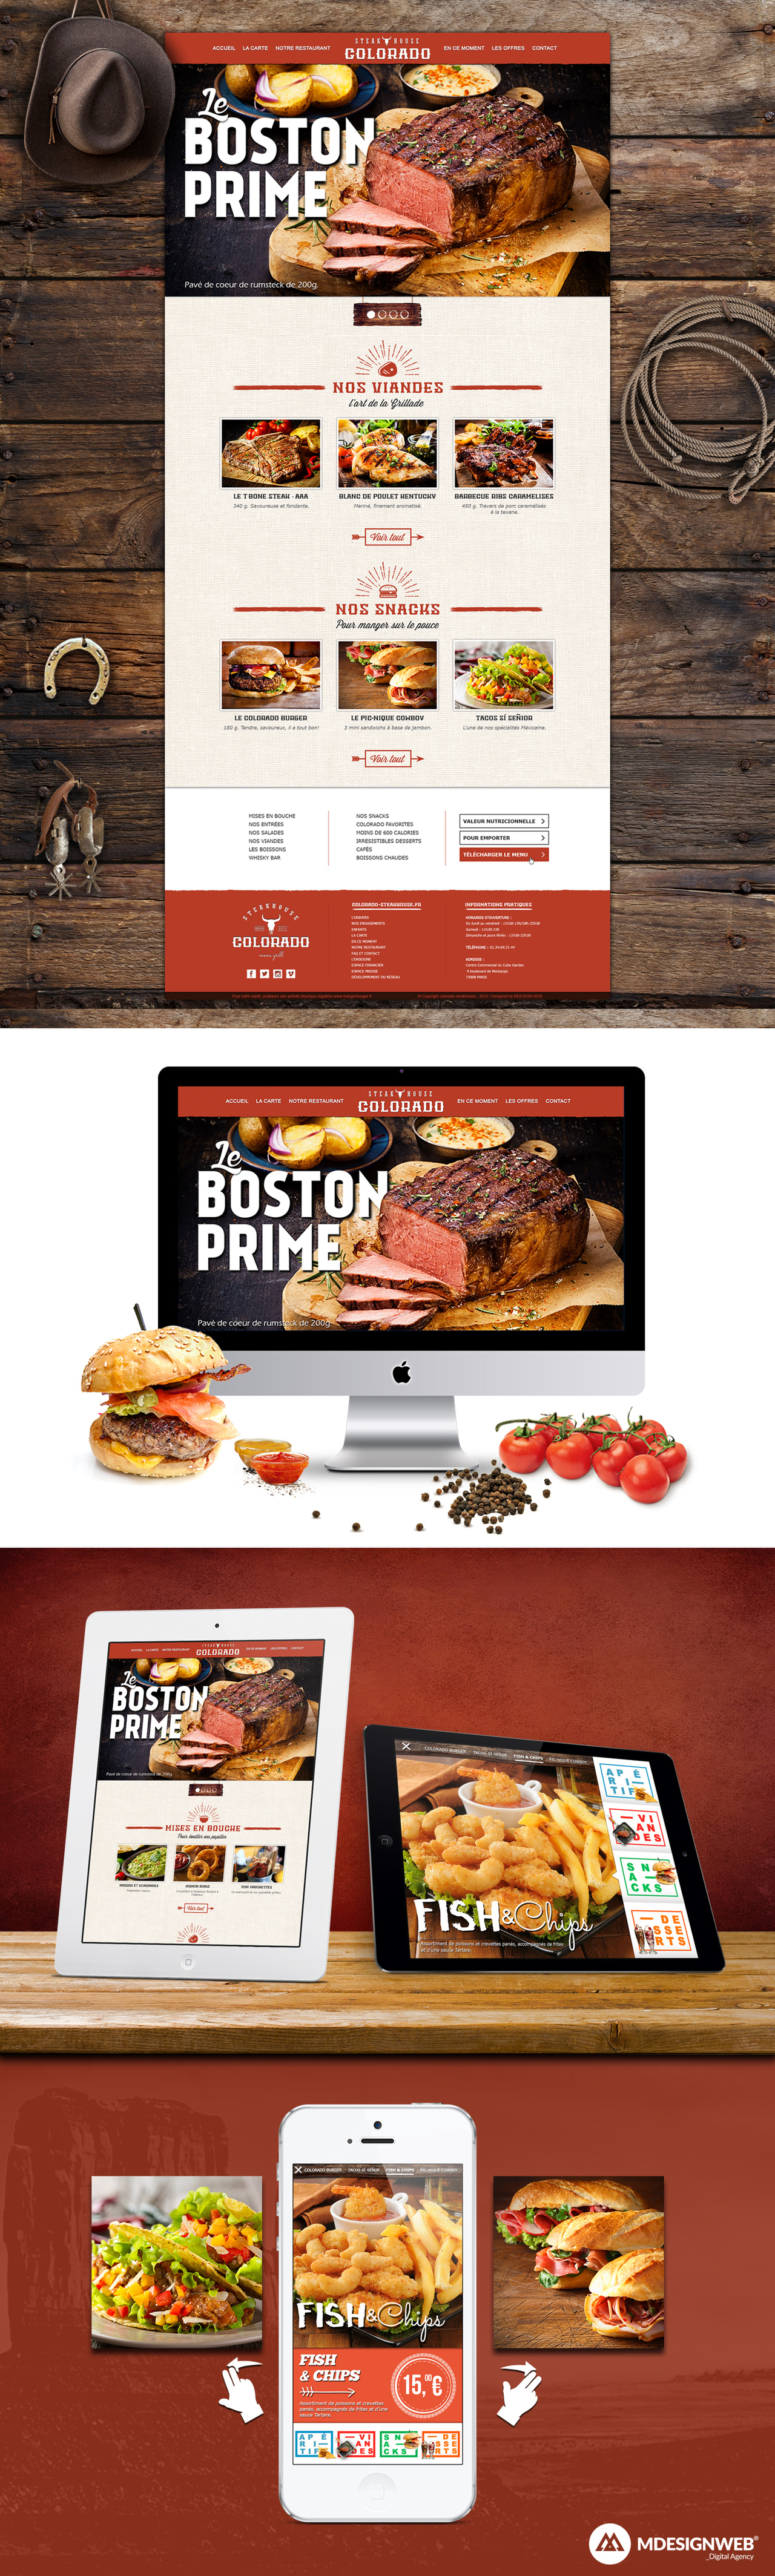 Colorado Steakhouse - Responsive Design